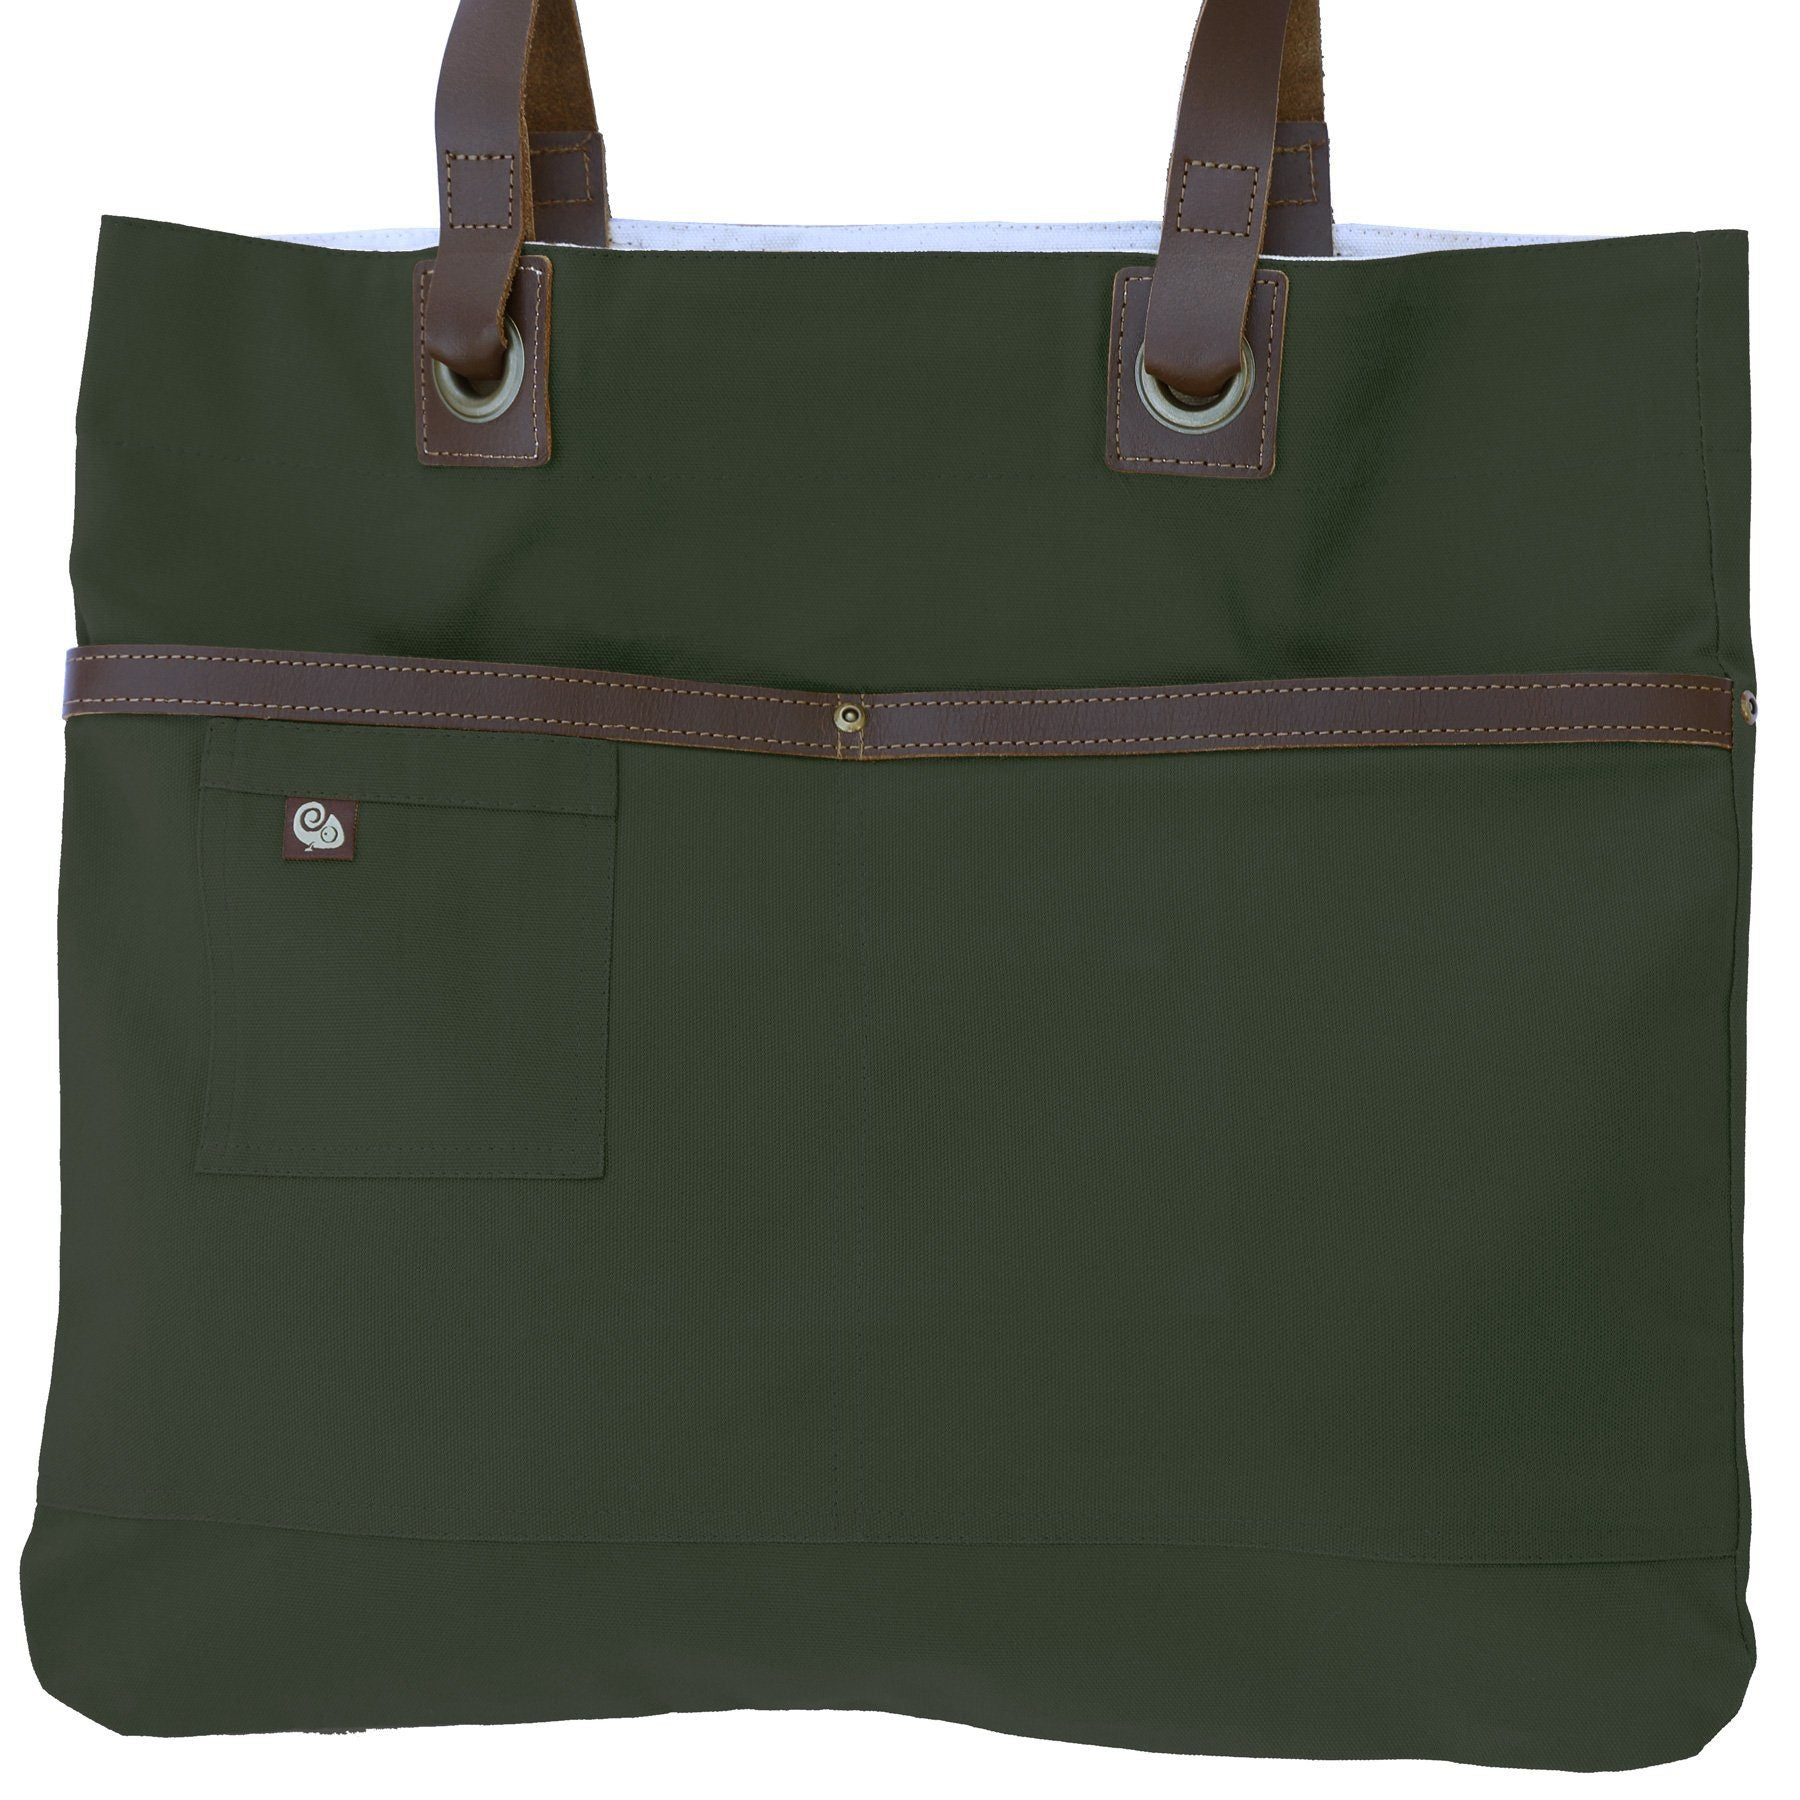 Koda Austell Canvas Bag (Moss)